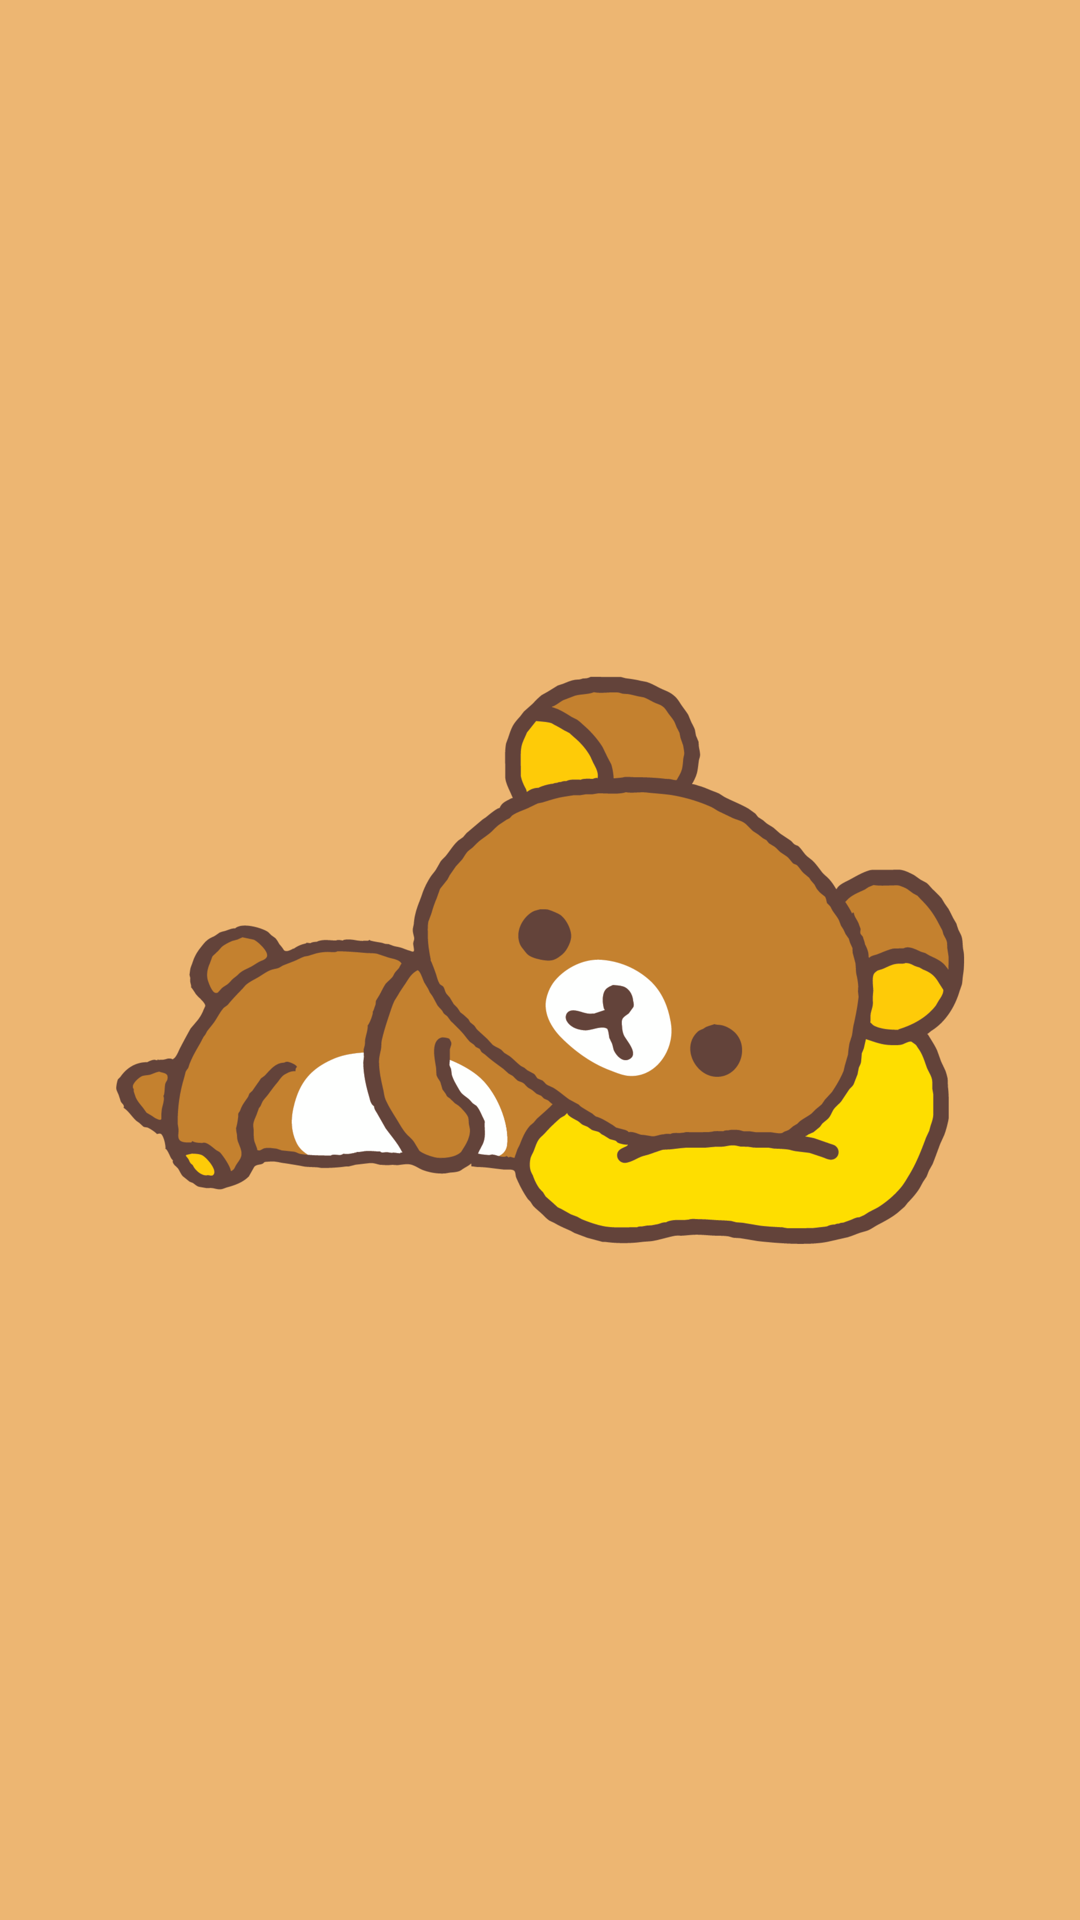 Rilakkuma Iphone Wallpaper Rilakkuma wallpaper Iphone wallpaper 1080x1920